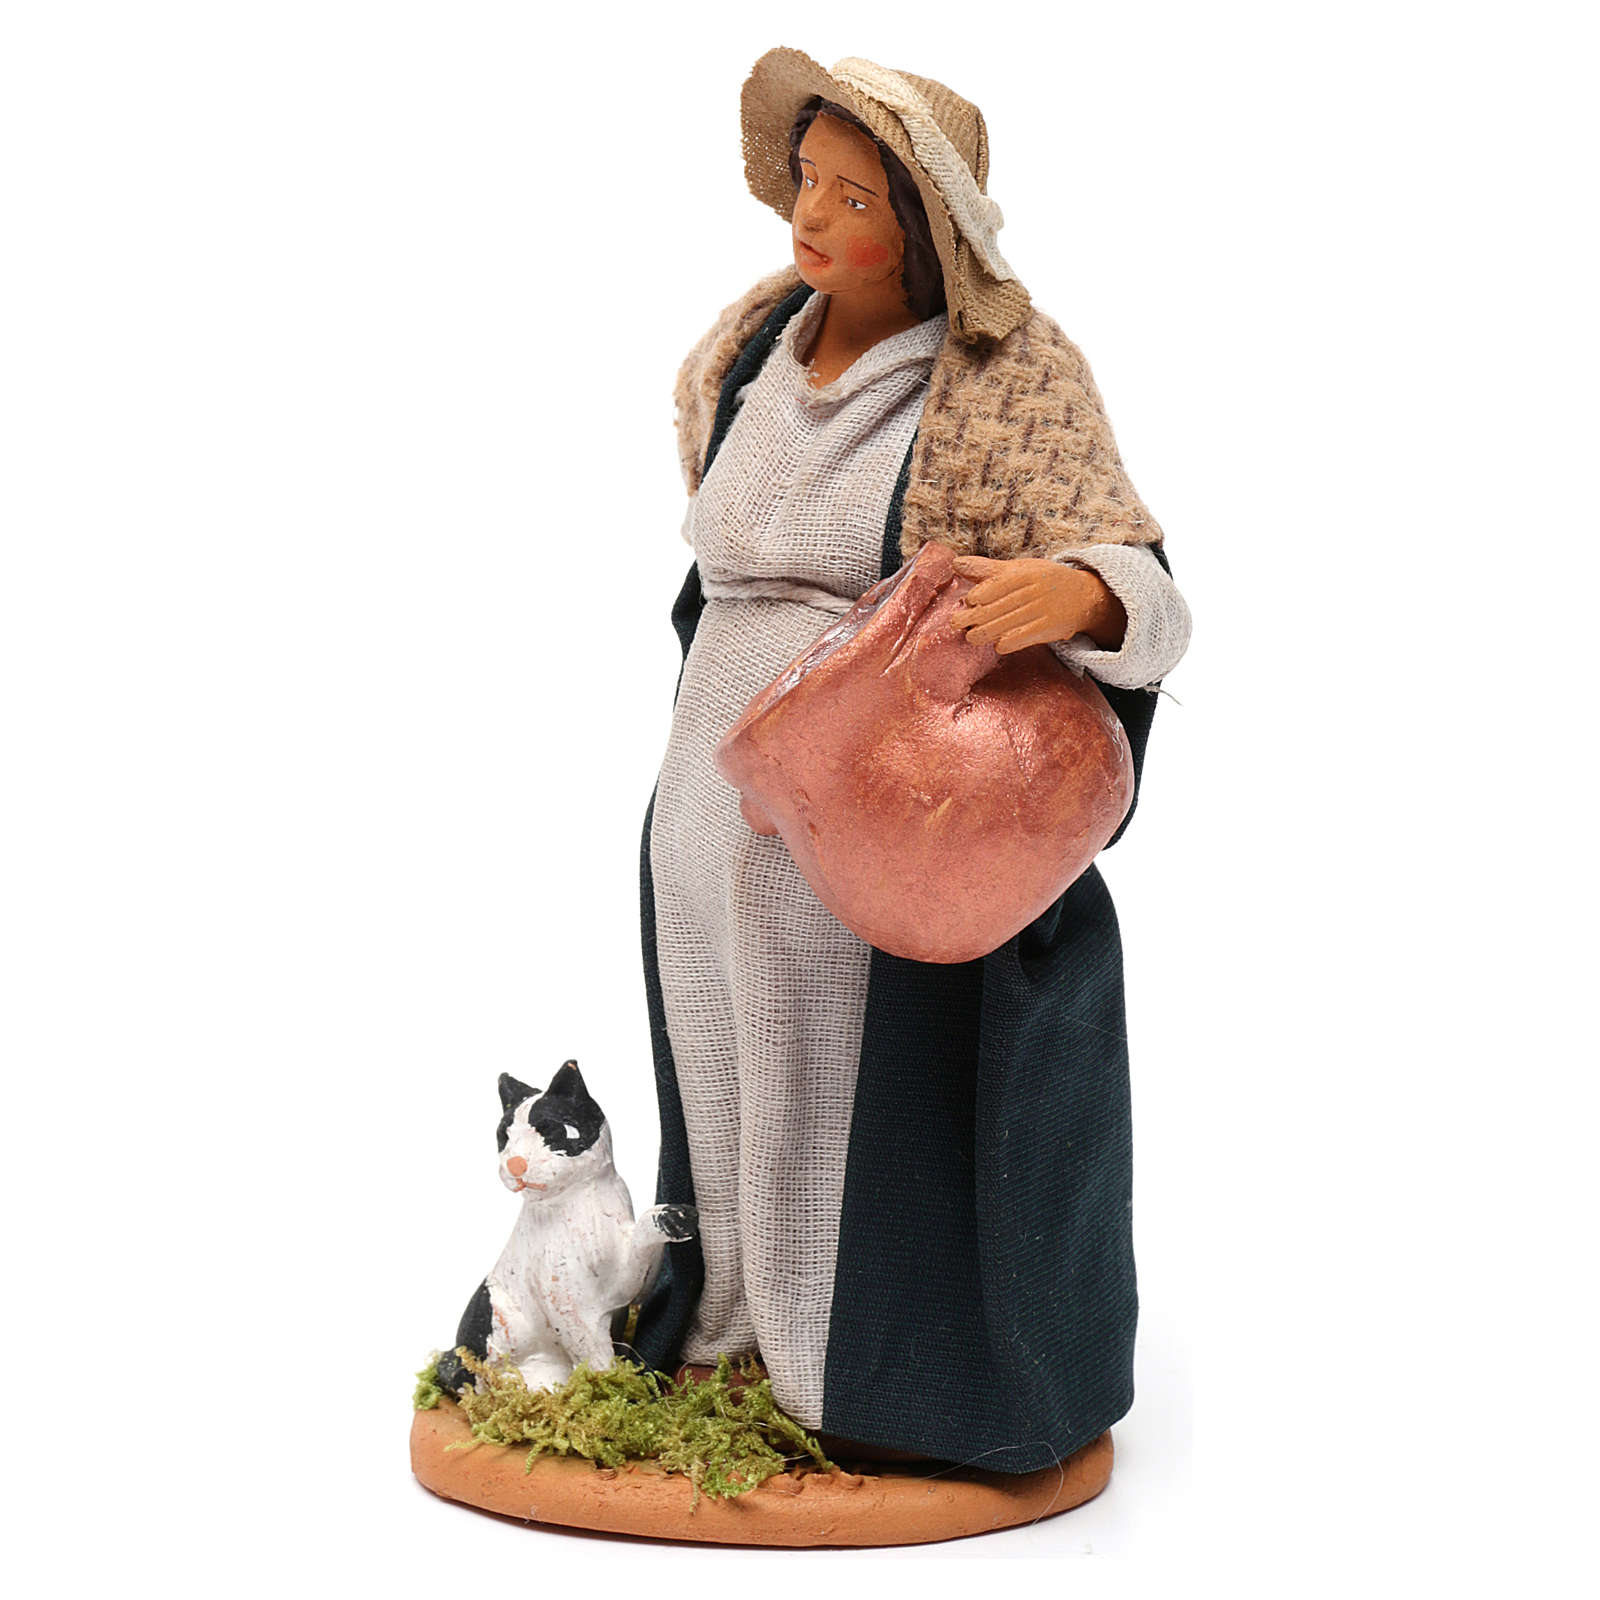 Pregnant shepherdess with pot and kitten for Neapolitan Nativity scene 12 cm 4